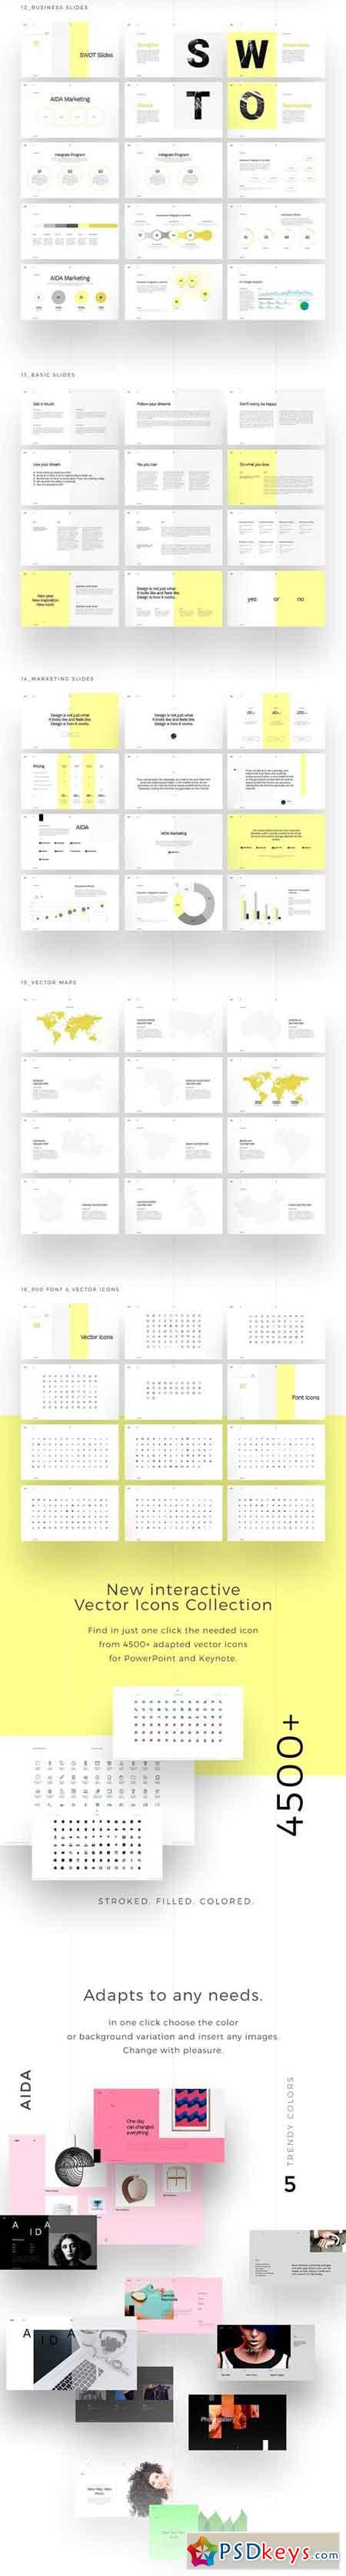 Powerpoint template pack image collections templates example aida powerpoint template icon pack 1408741 free download aida powerpoint template icon pack 1408741 alramifo image toneelgroepblik Images